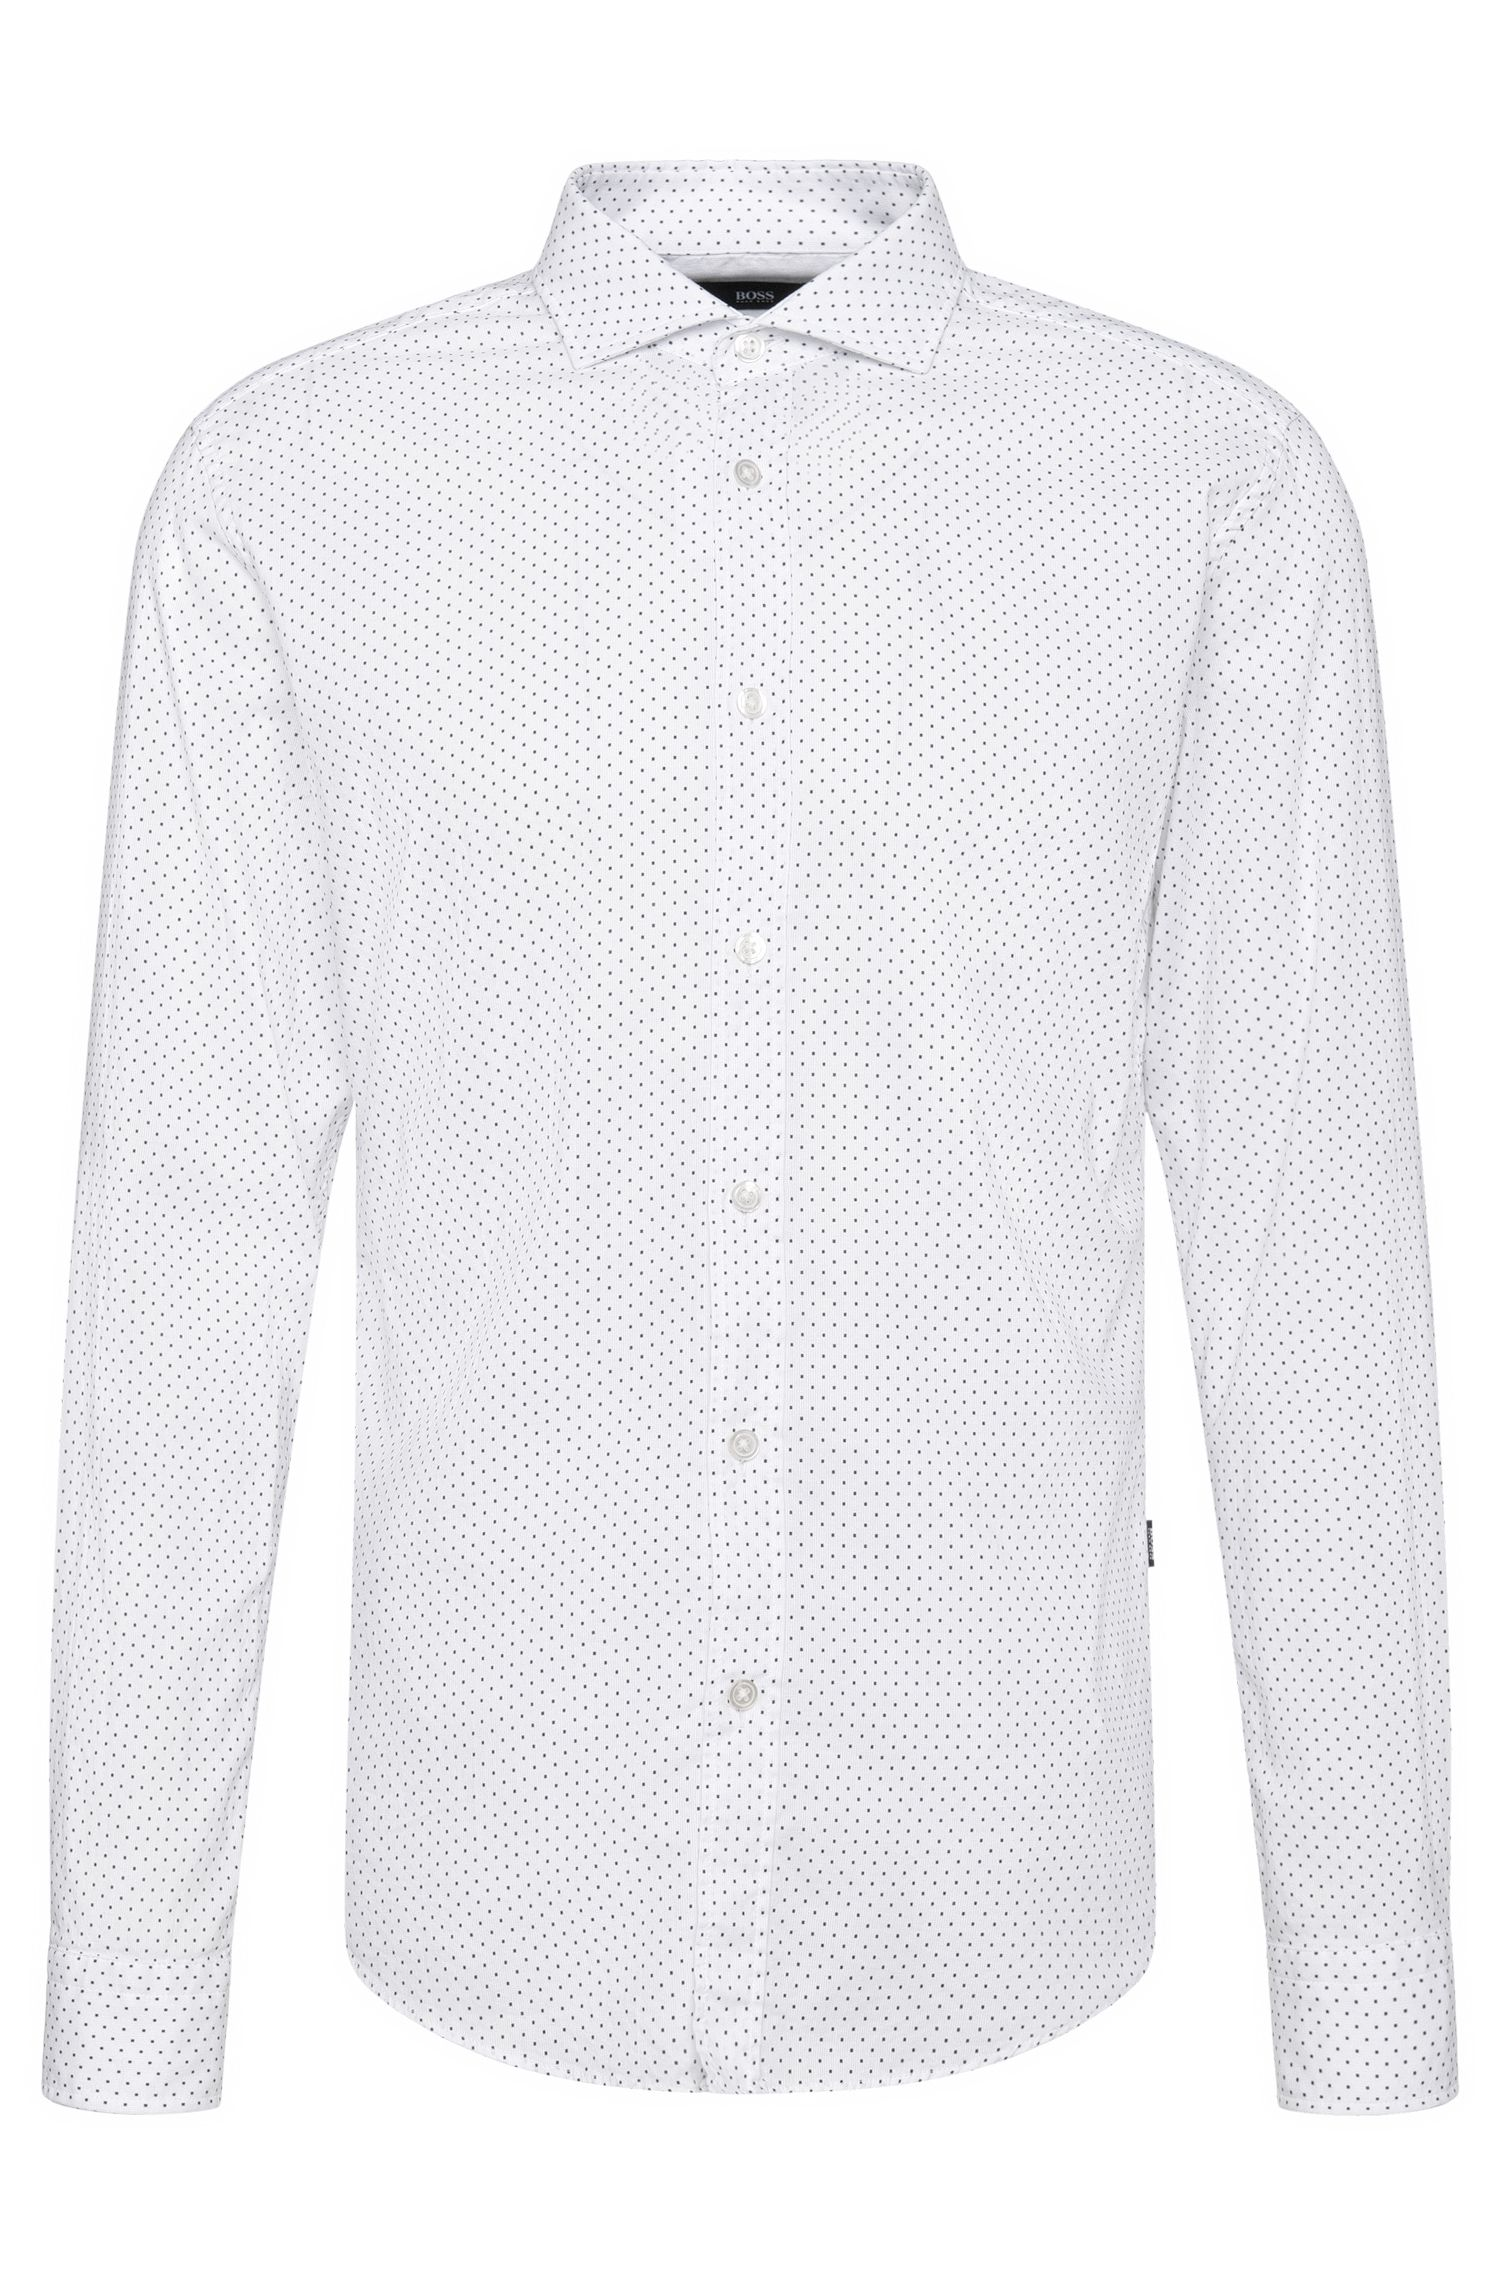 Patterned slim-fit shirt in cotton: 'Ridley_5'